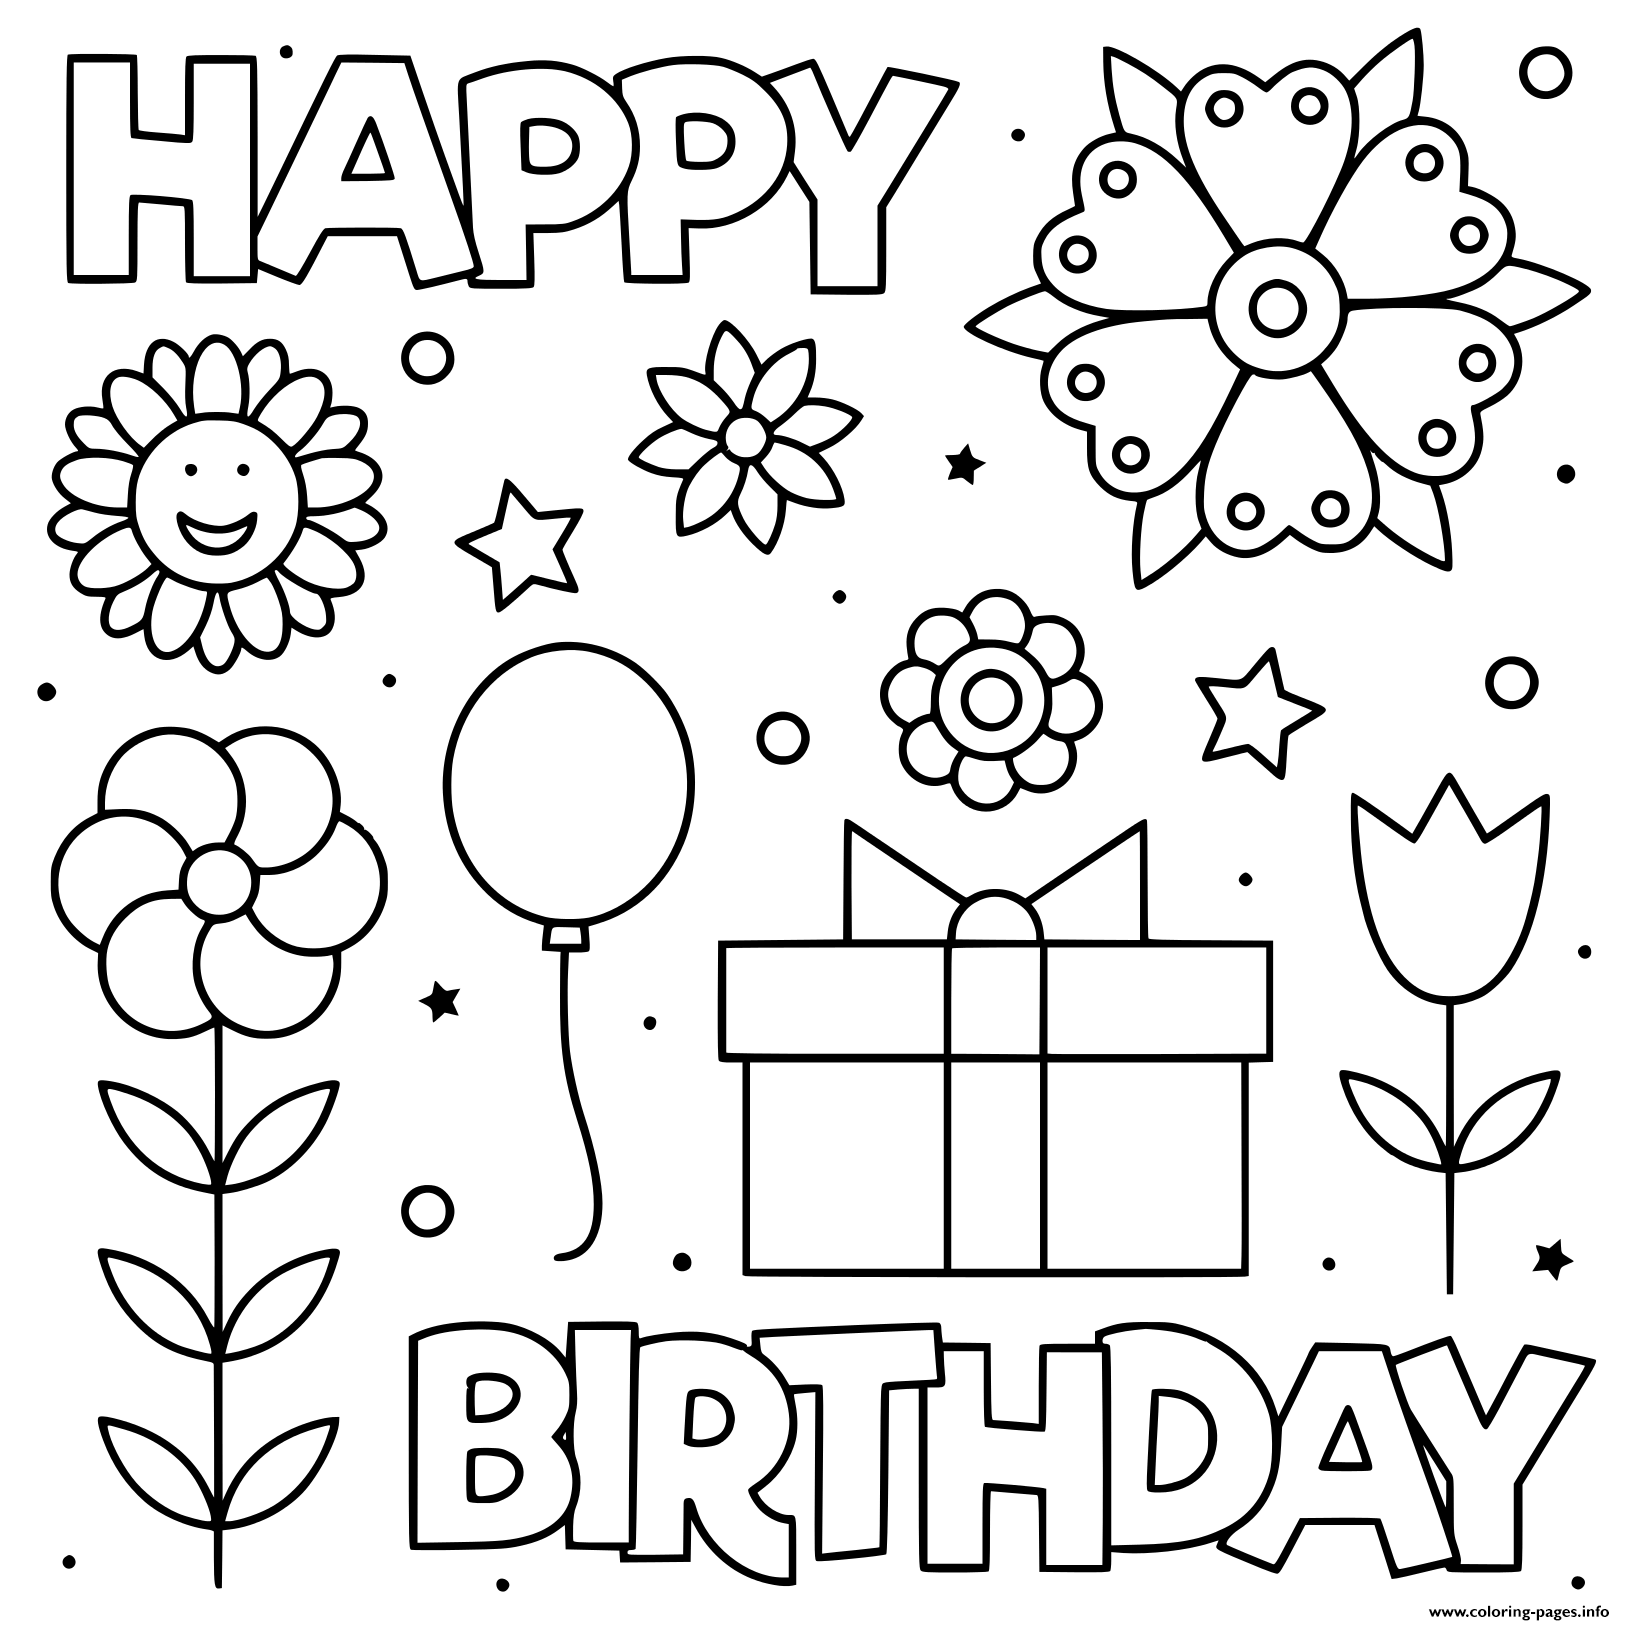 - Happy Birthday Black And White Flowers Coloring Pages Printable